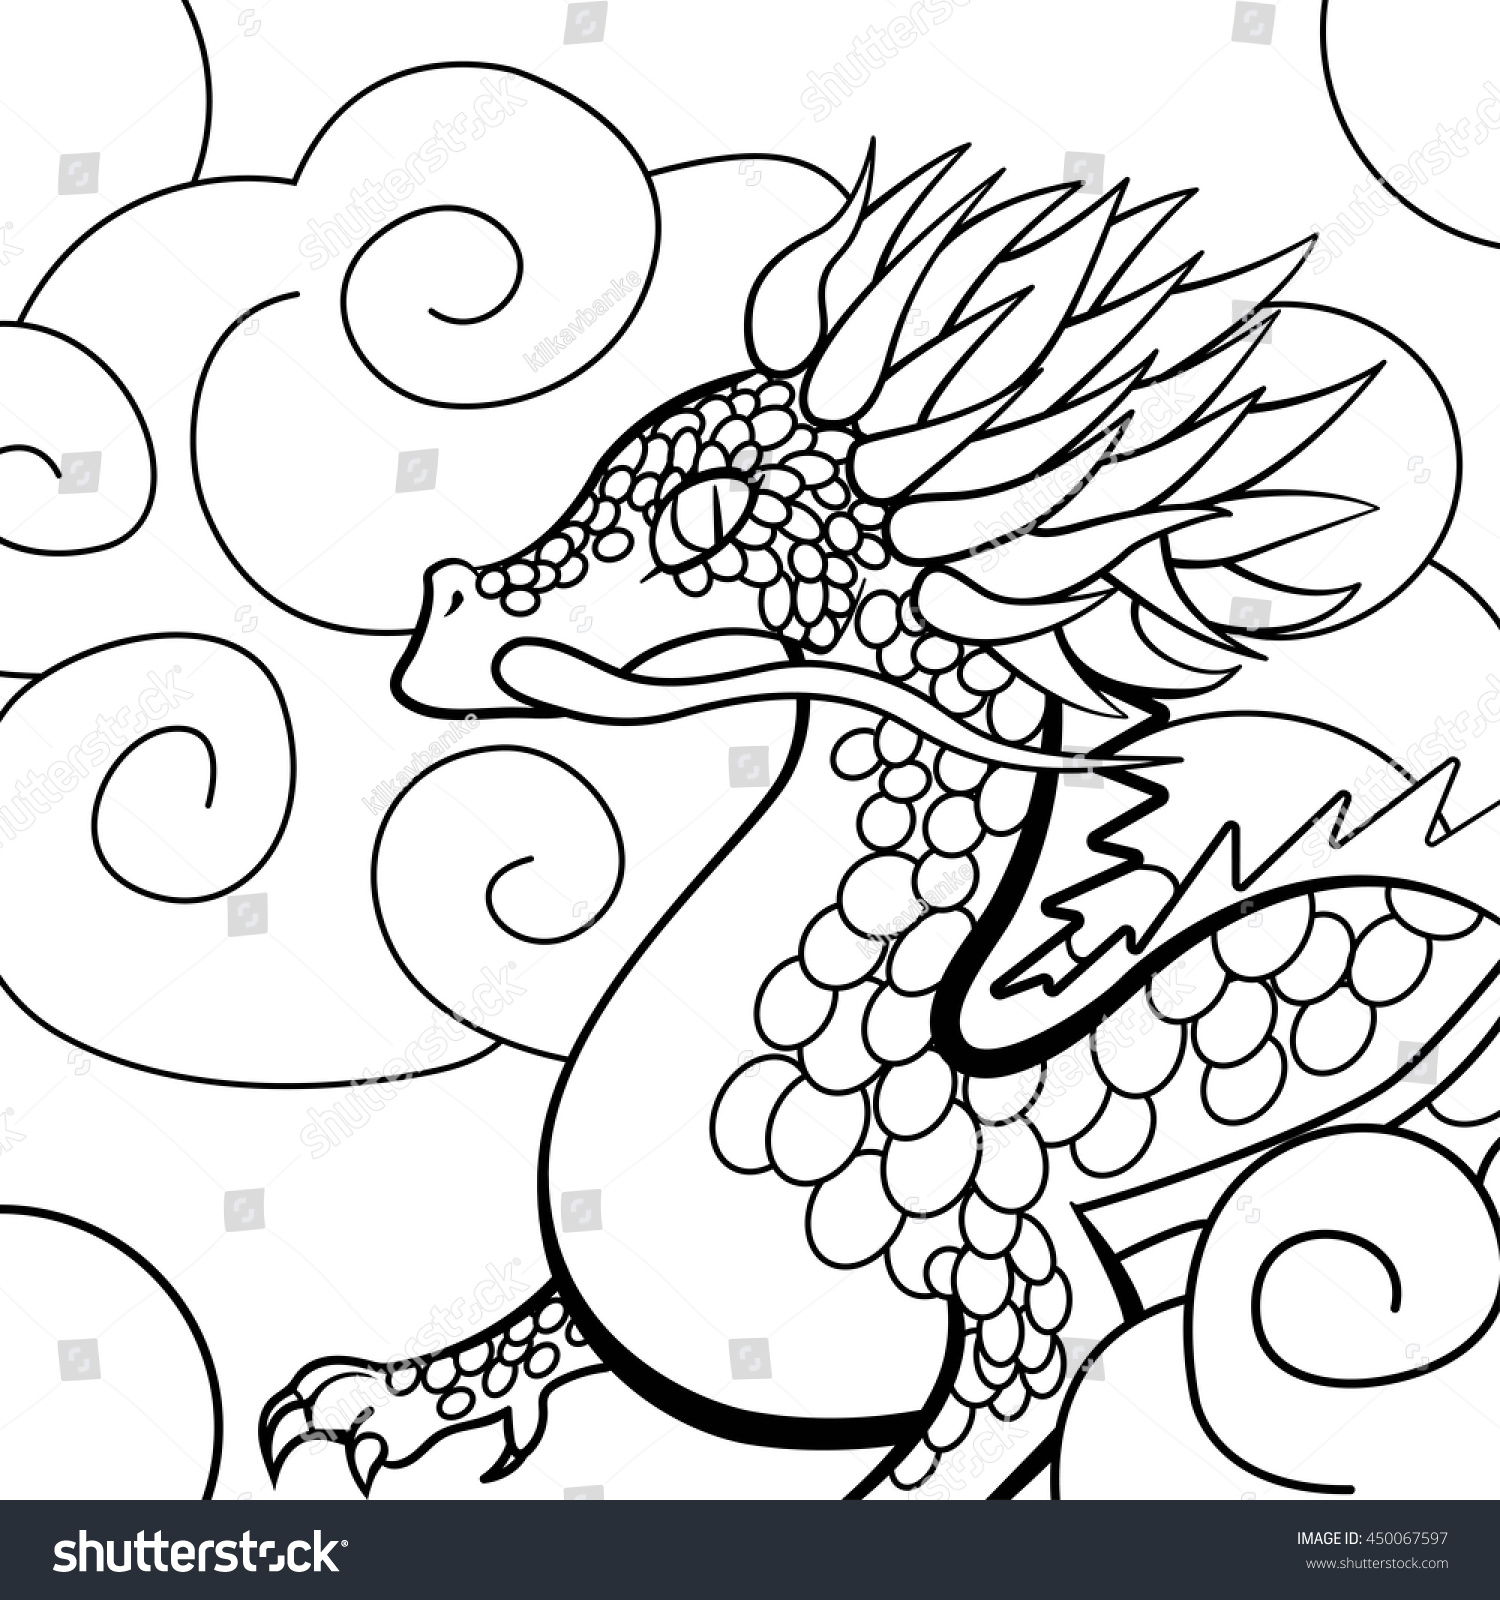 Drawing Flying Dragon Coloring Page Decoration Stock Vector ...